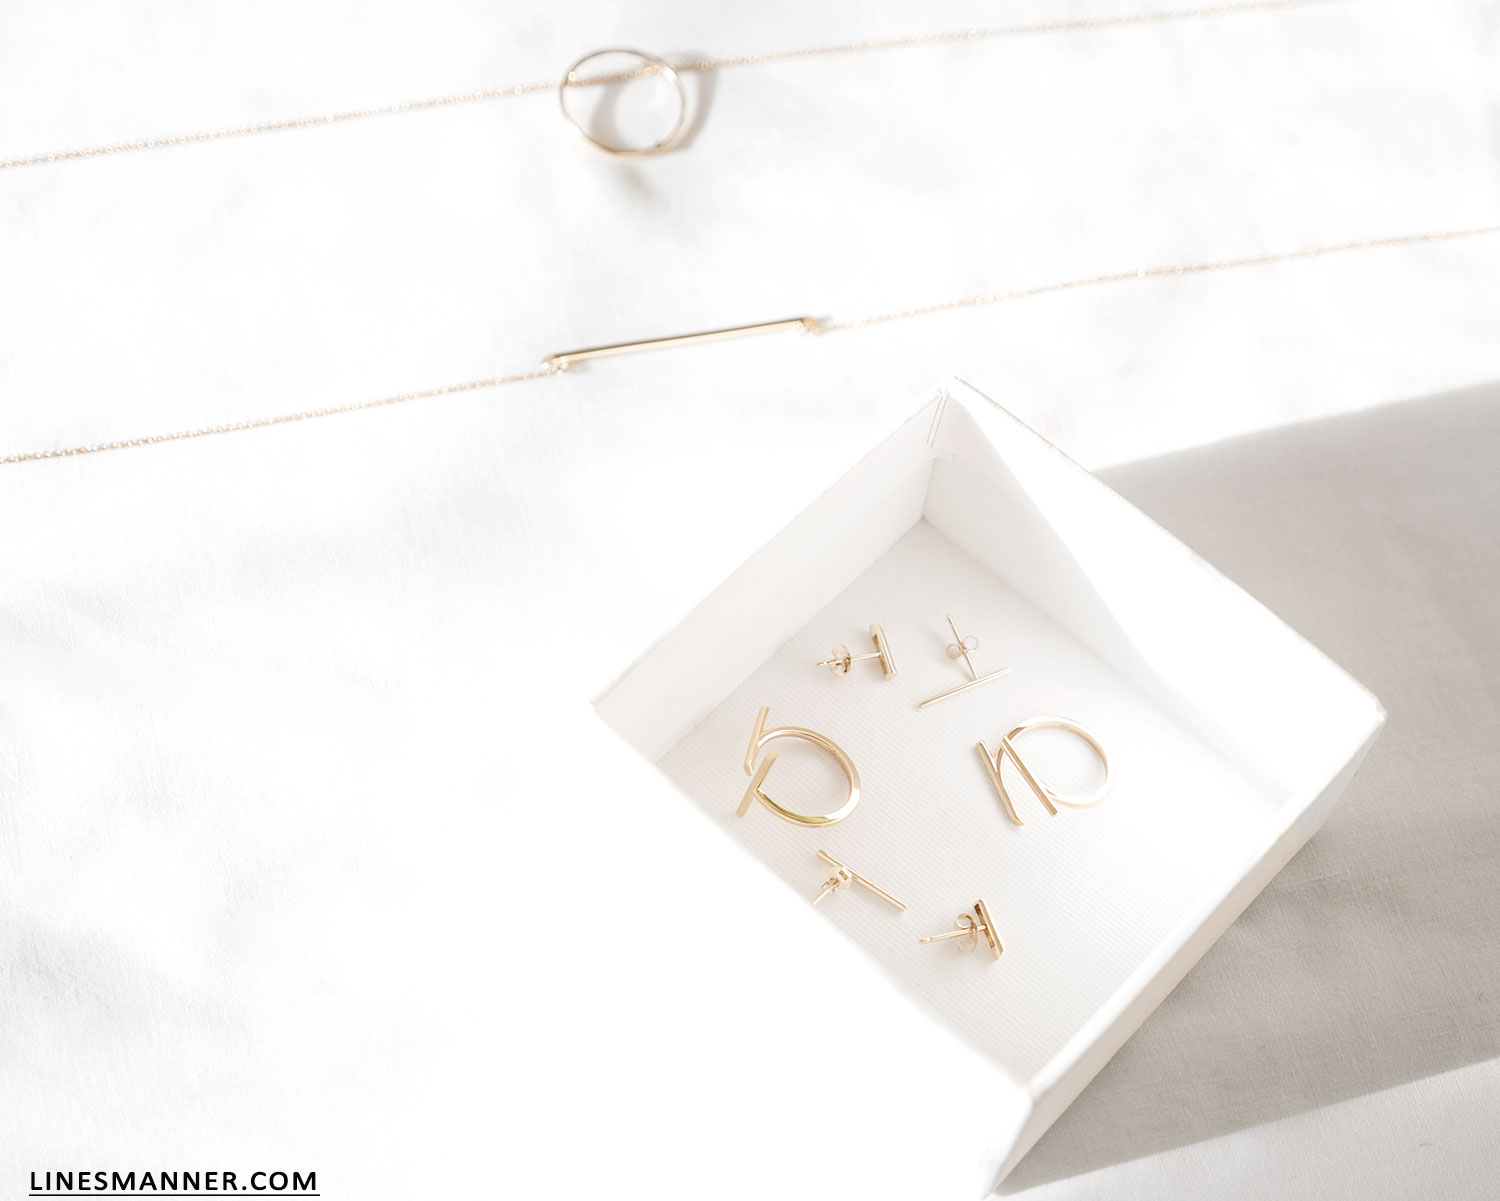 Lines-Manner-Bloglovin-Mejuri-Collaboration-Contest-Minimalism-Edge-NYC-Scandinavian-Pure_and_Simple-Essentials-Details-Gold-Vermeil-Jewelry-Rings-Earrings-White-Whiteout-Subtil-Linear-Geometric-11